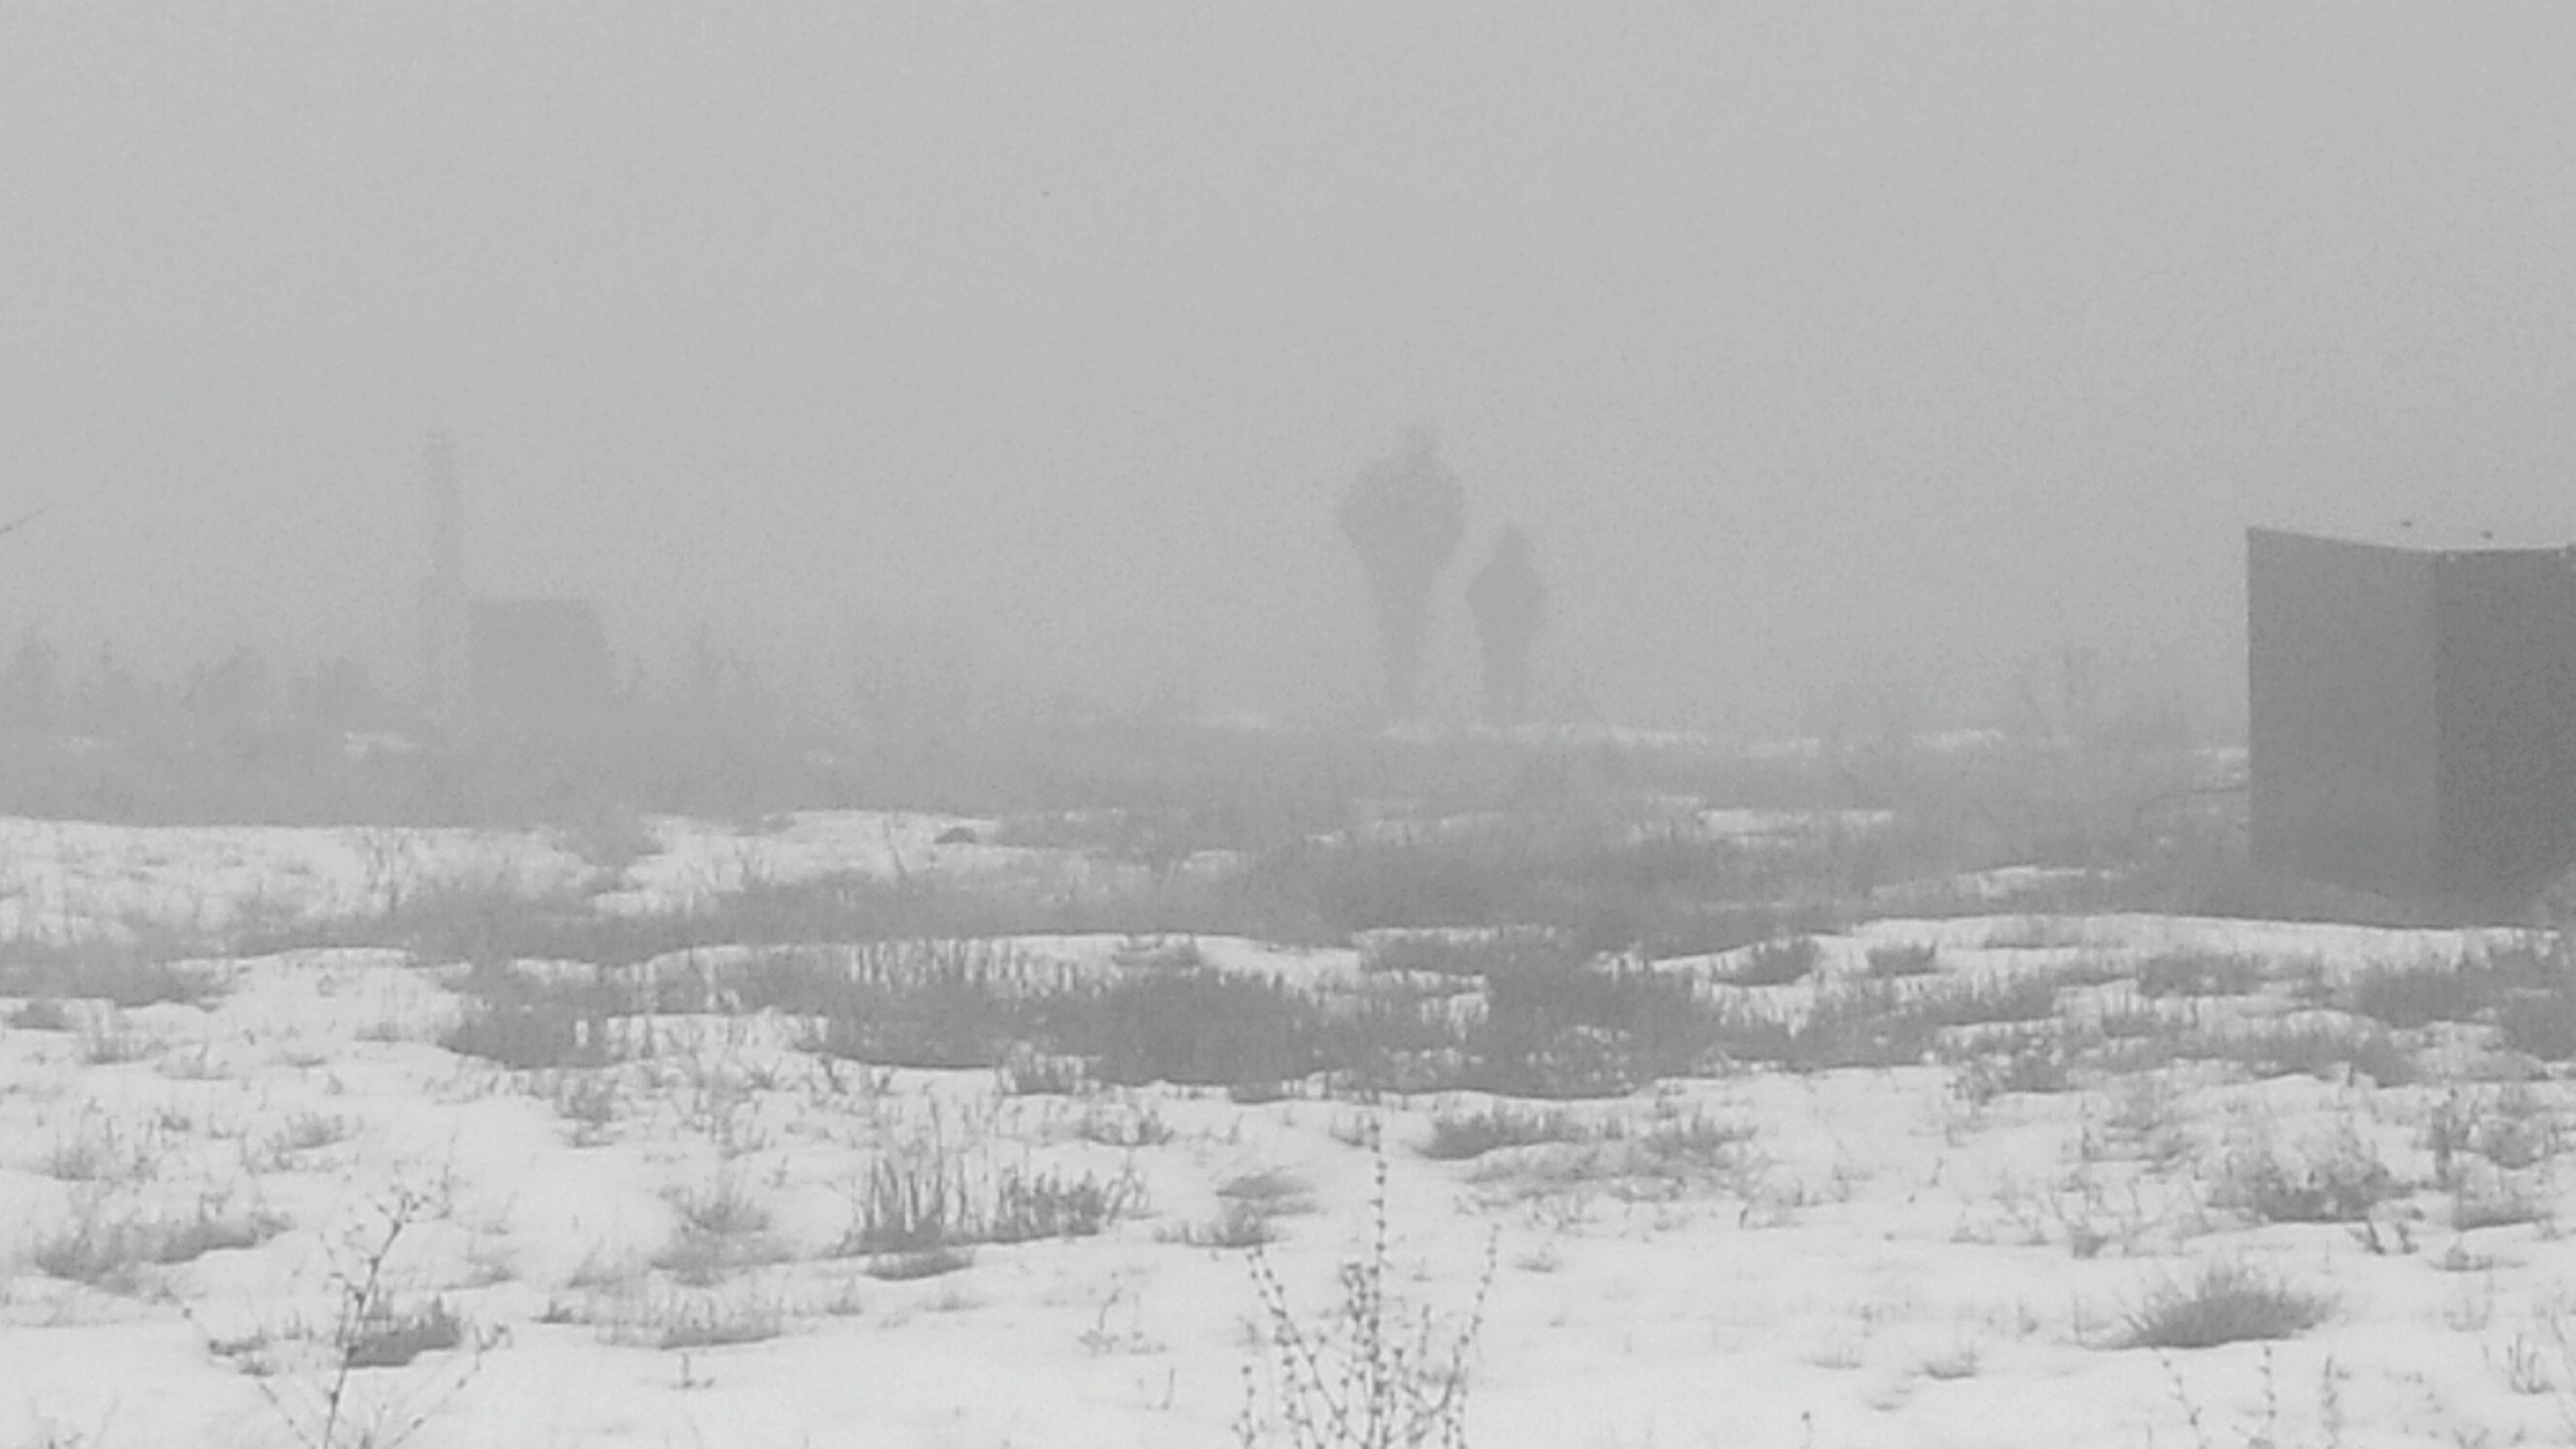 winter, weather, cold temperature, nature, snow, day, outdoors, field, fog, real people, sky, built structure, beauty in nature, landscape, city, tree, snowing, architecture, hazy, rainfall